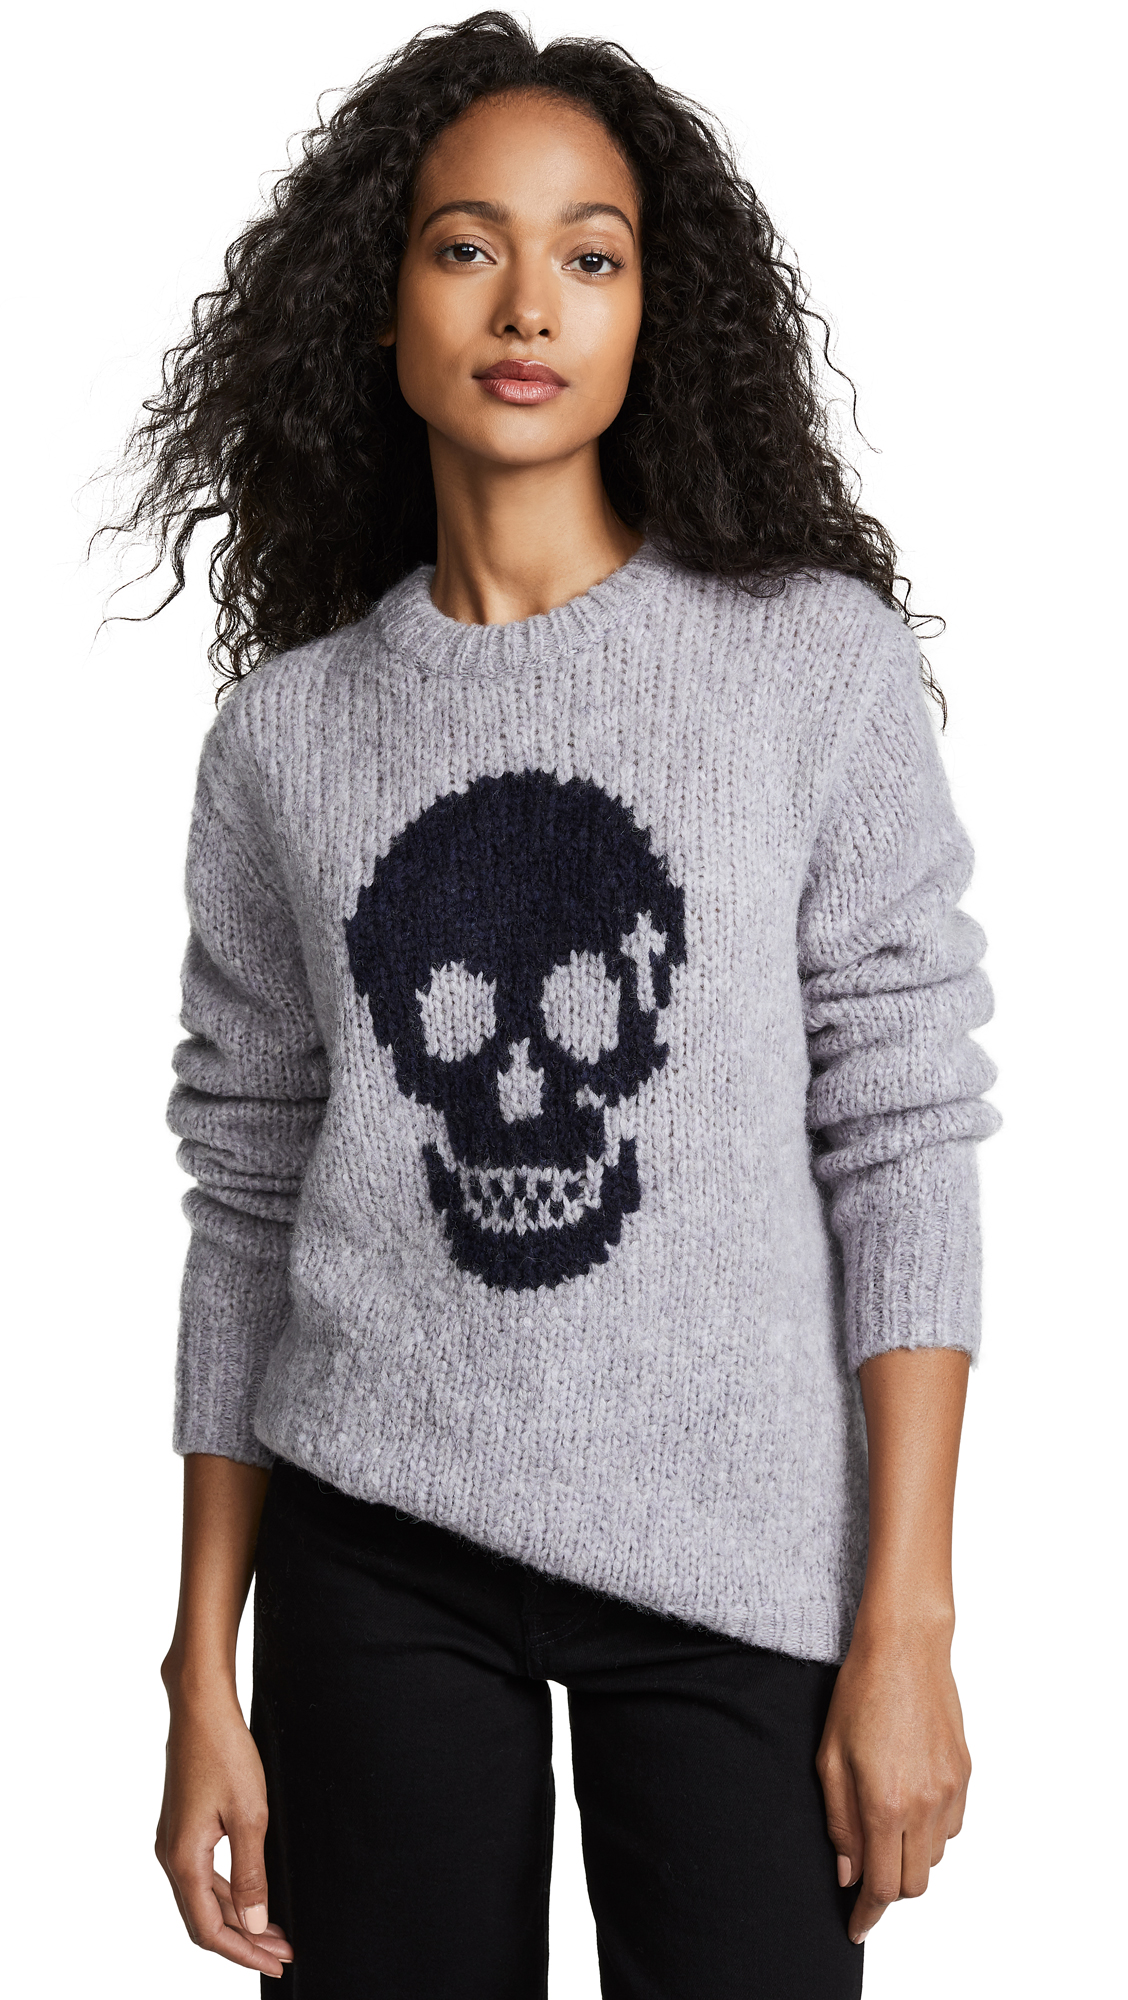 360 SWEATER Madonna Wool Sweater In Lilac/Navy Skull